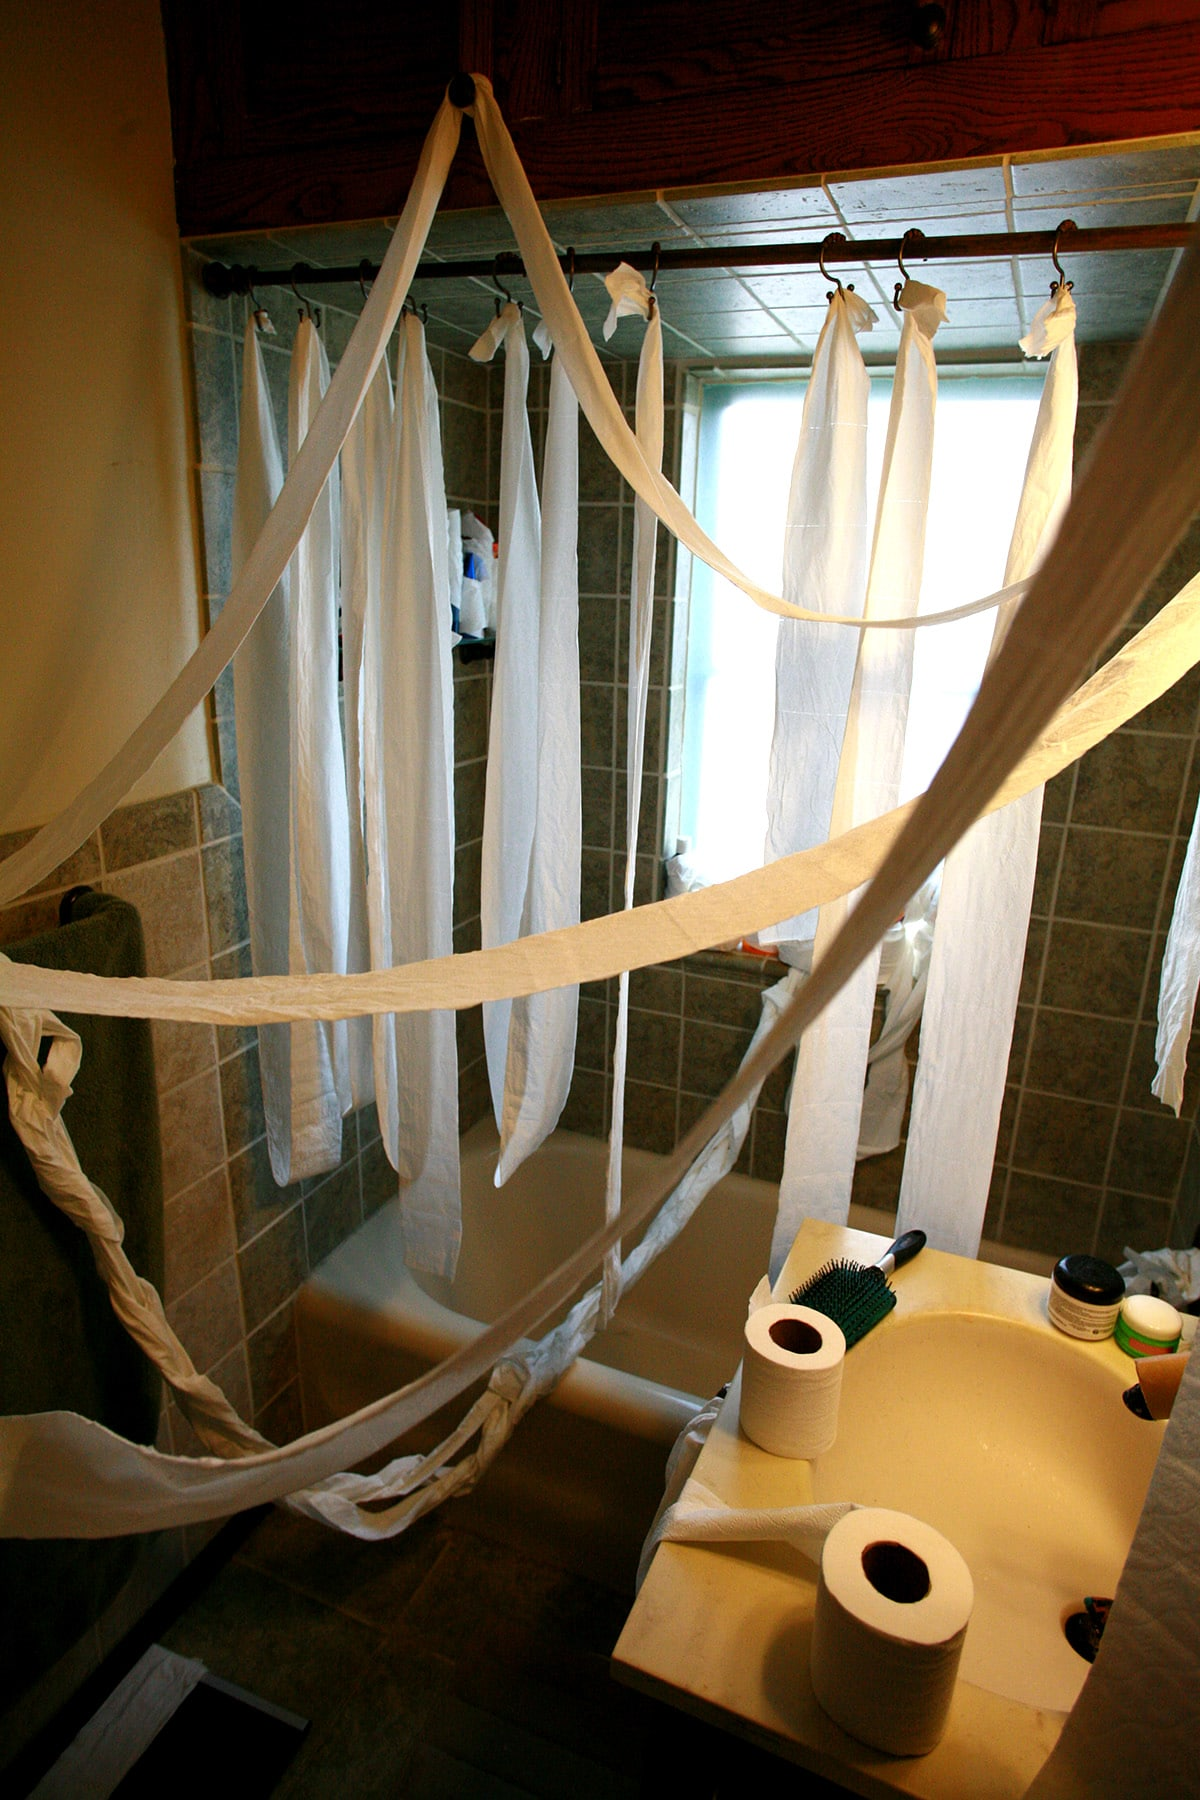 Many strands of toilet paper draped over the bathrom vanity and shower.